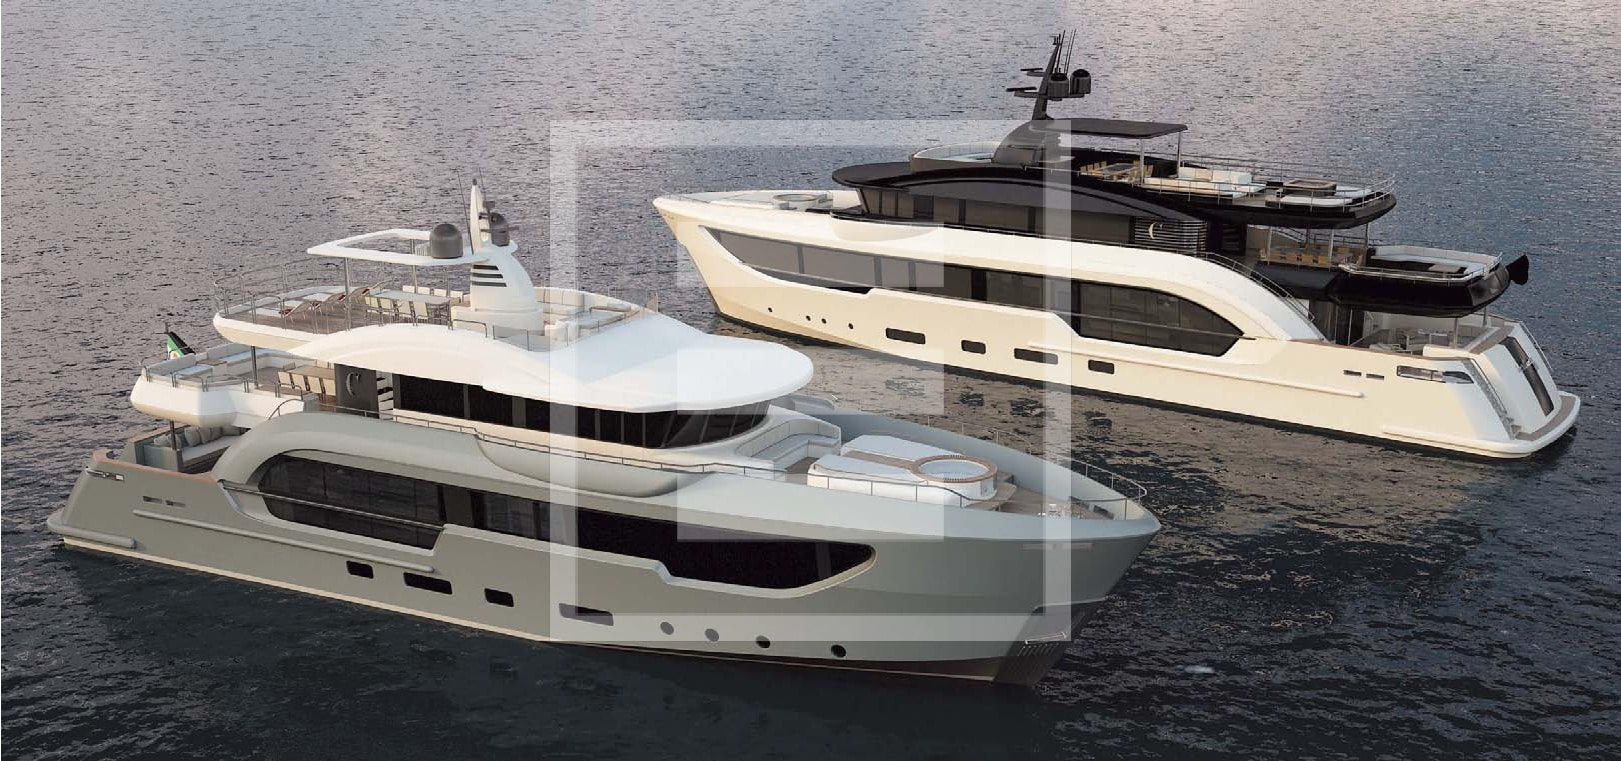 Berlinetta is the new range to emerge from the increasingly close working relationship between Columbus Yachts and Too Design